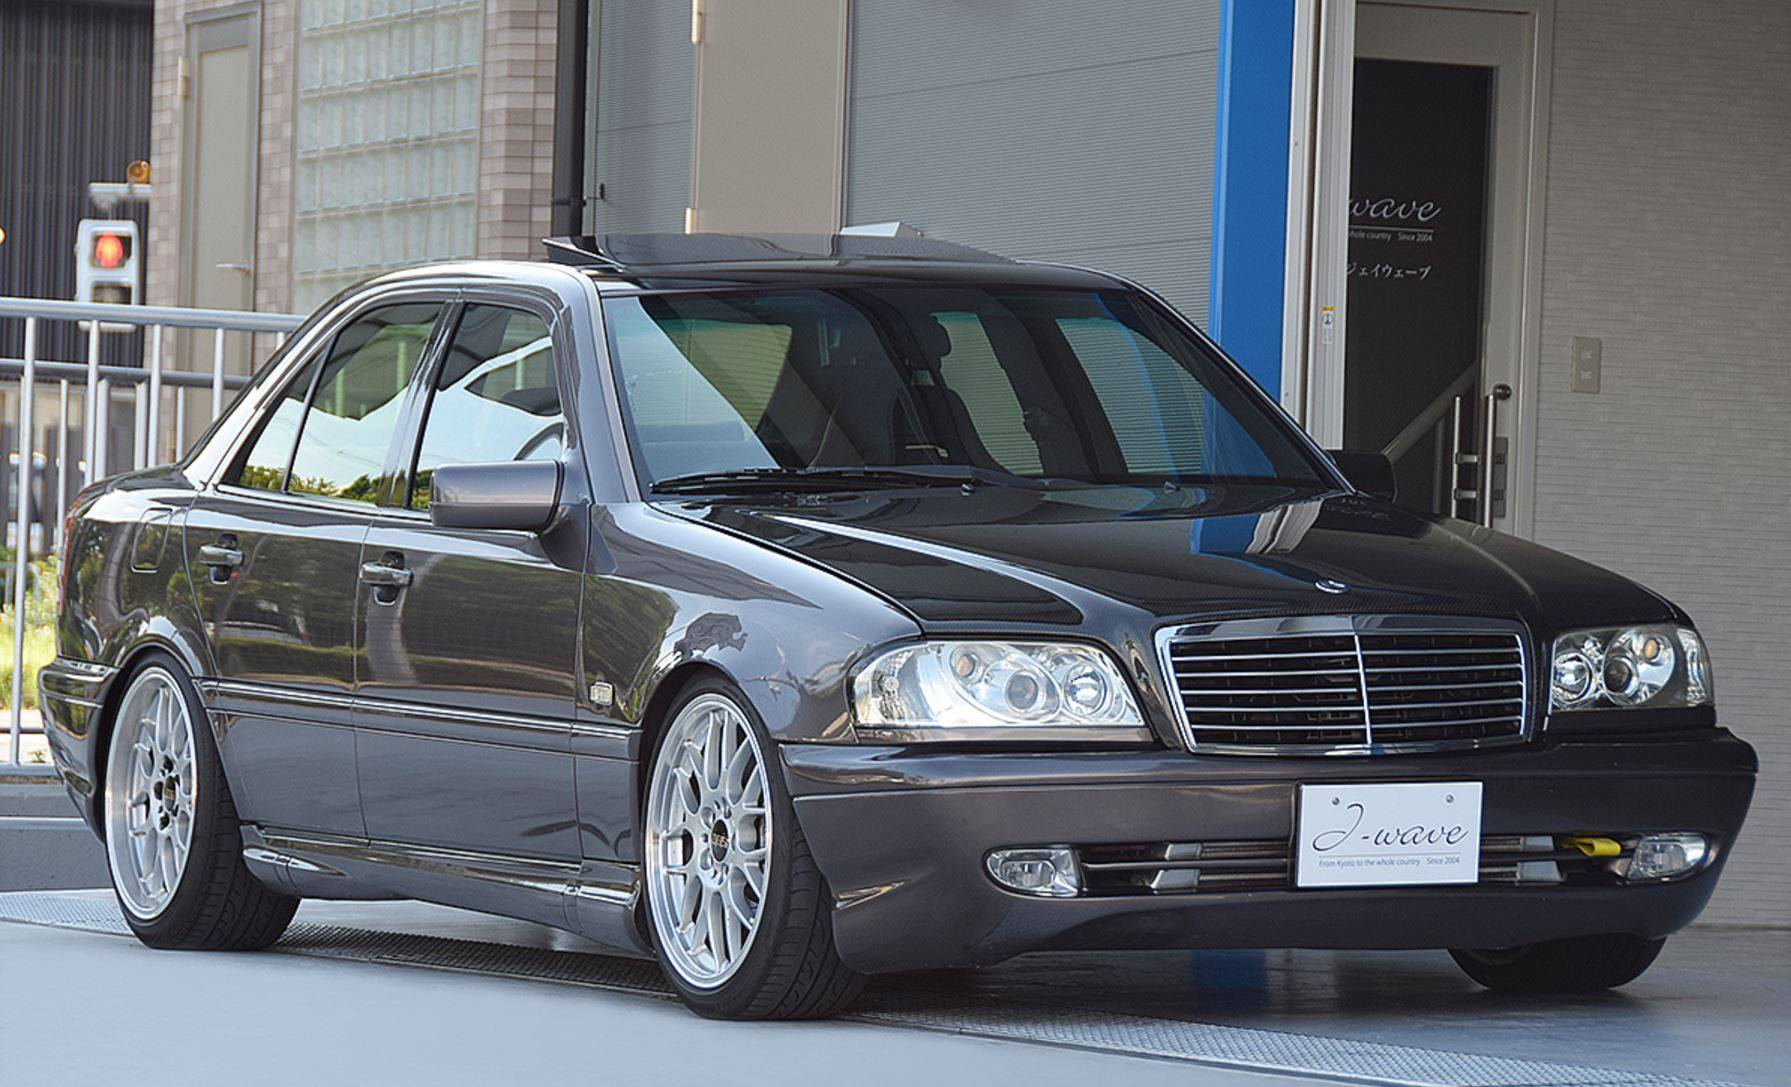 1995 mercedes c200 with a turbo honda inline four engine swap depot. Black Bedroom Furniture Sets. Home Design Ideas